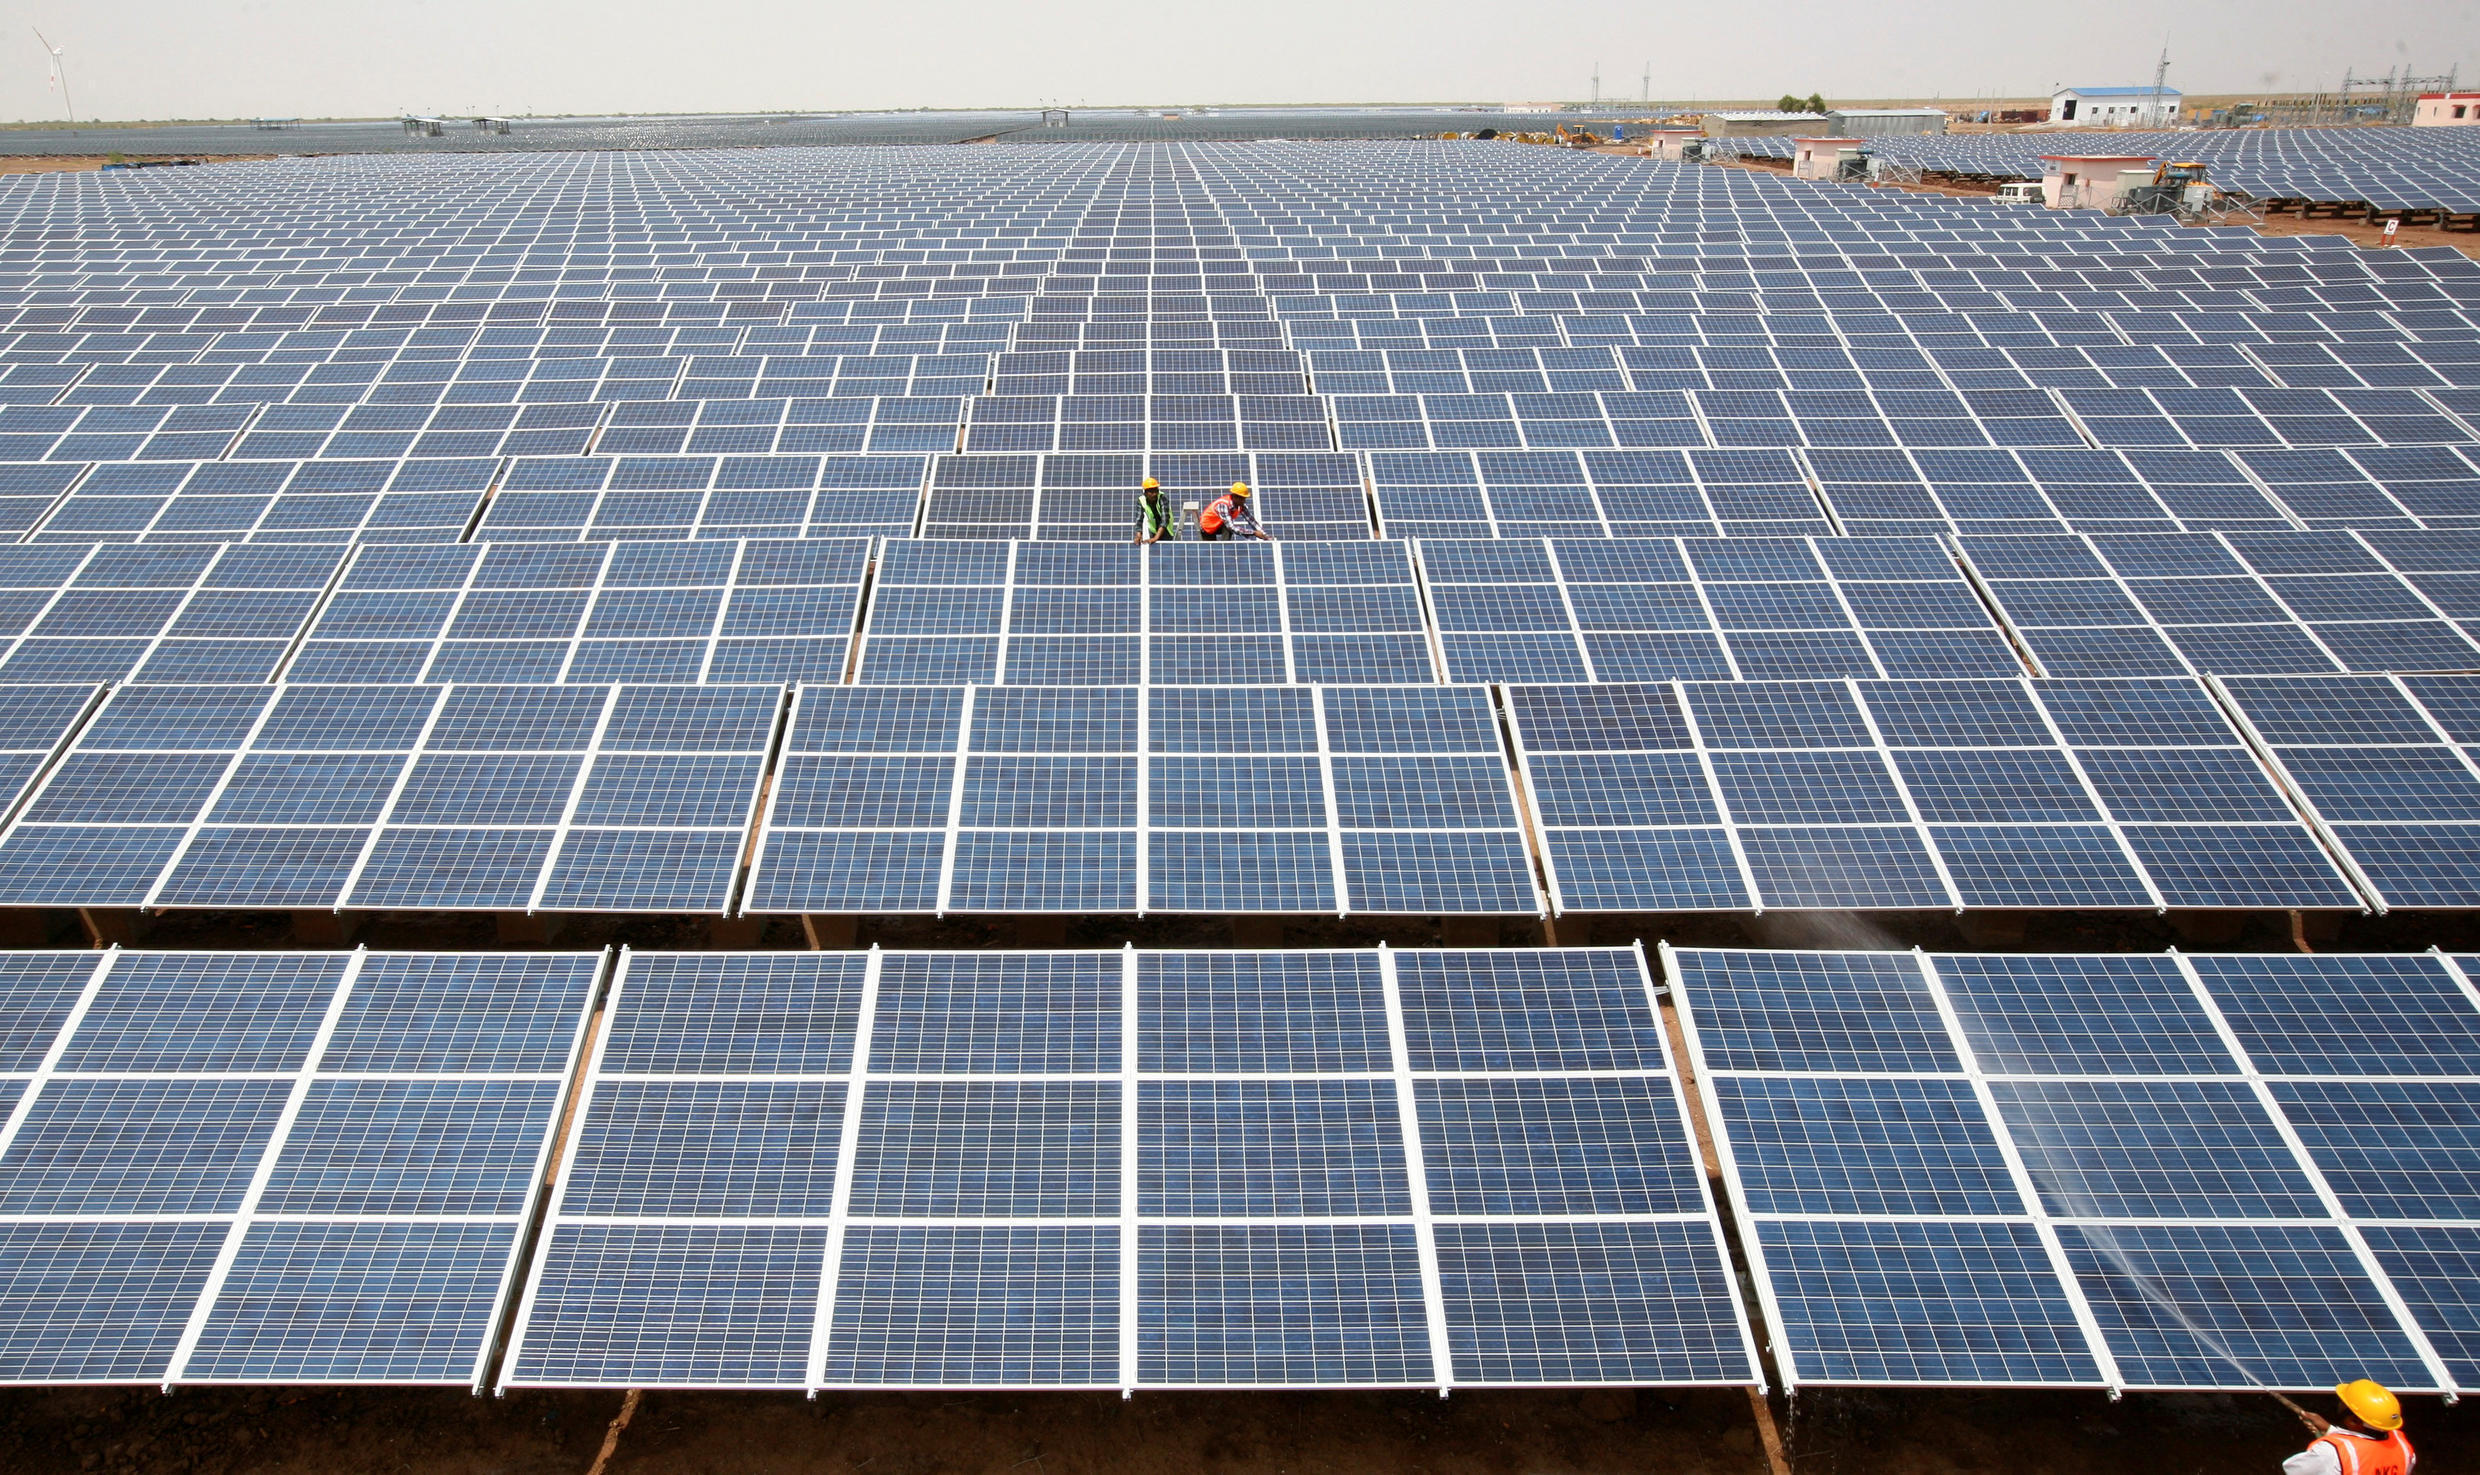 Workers install photovoltaic solar panels at the Gujarat solar park in Charanka village, Gujarat, India.